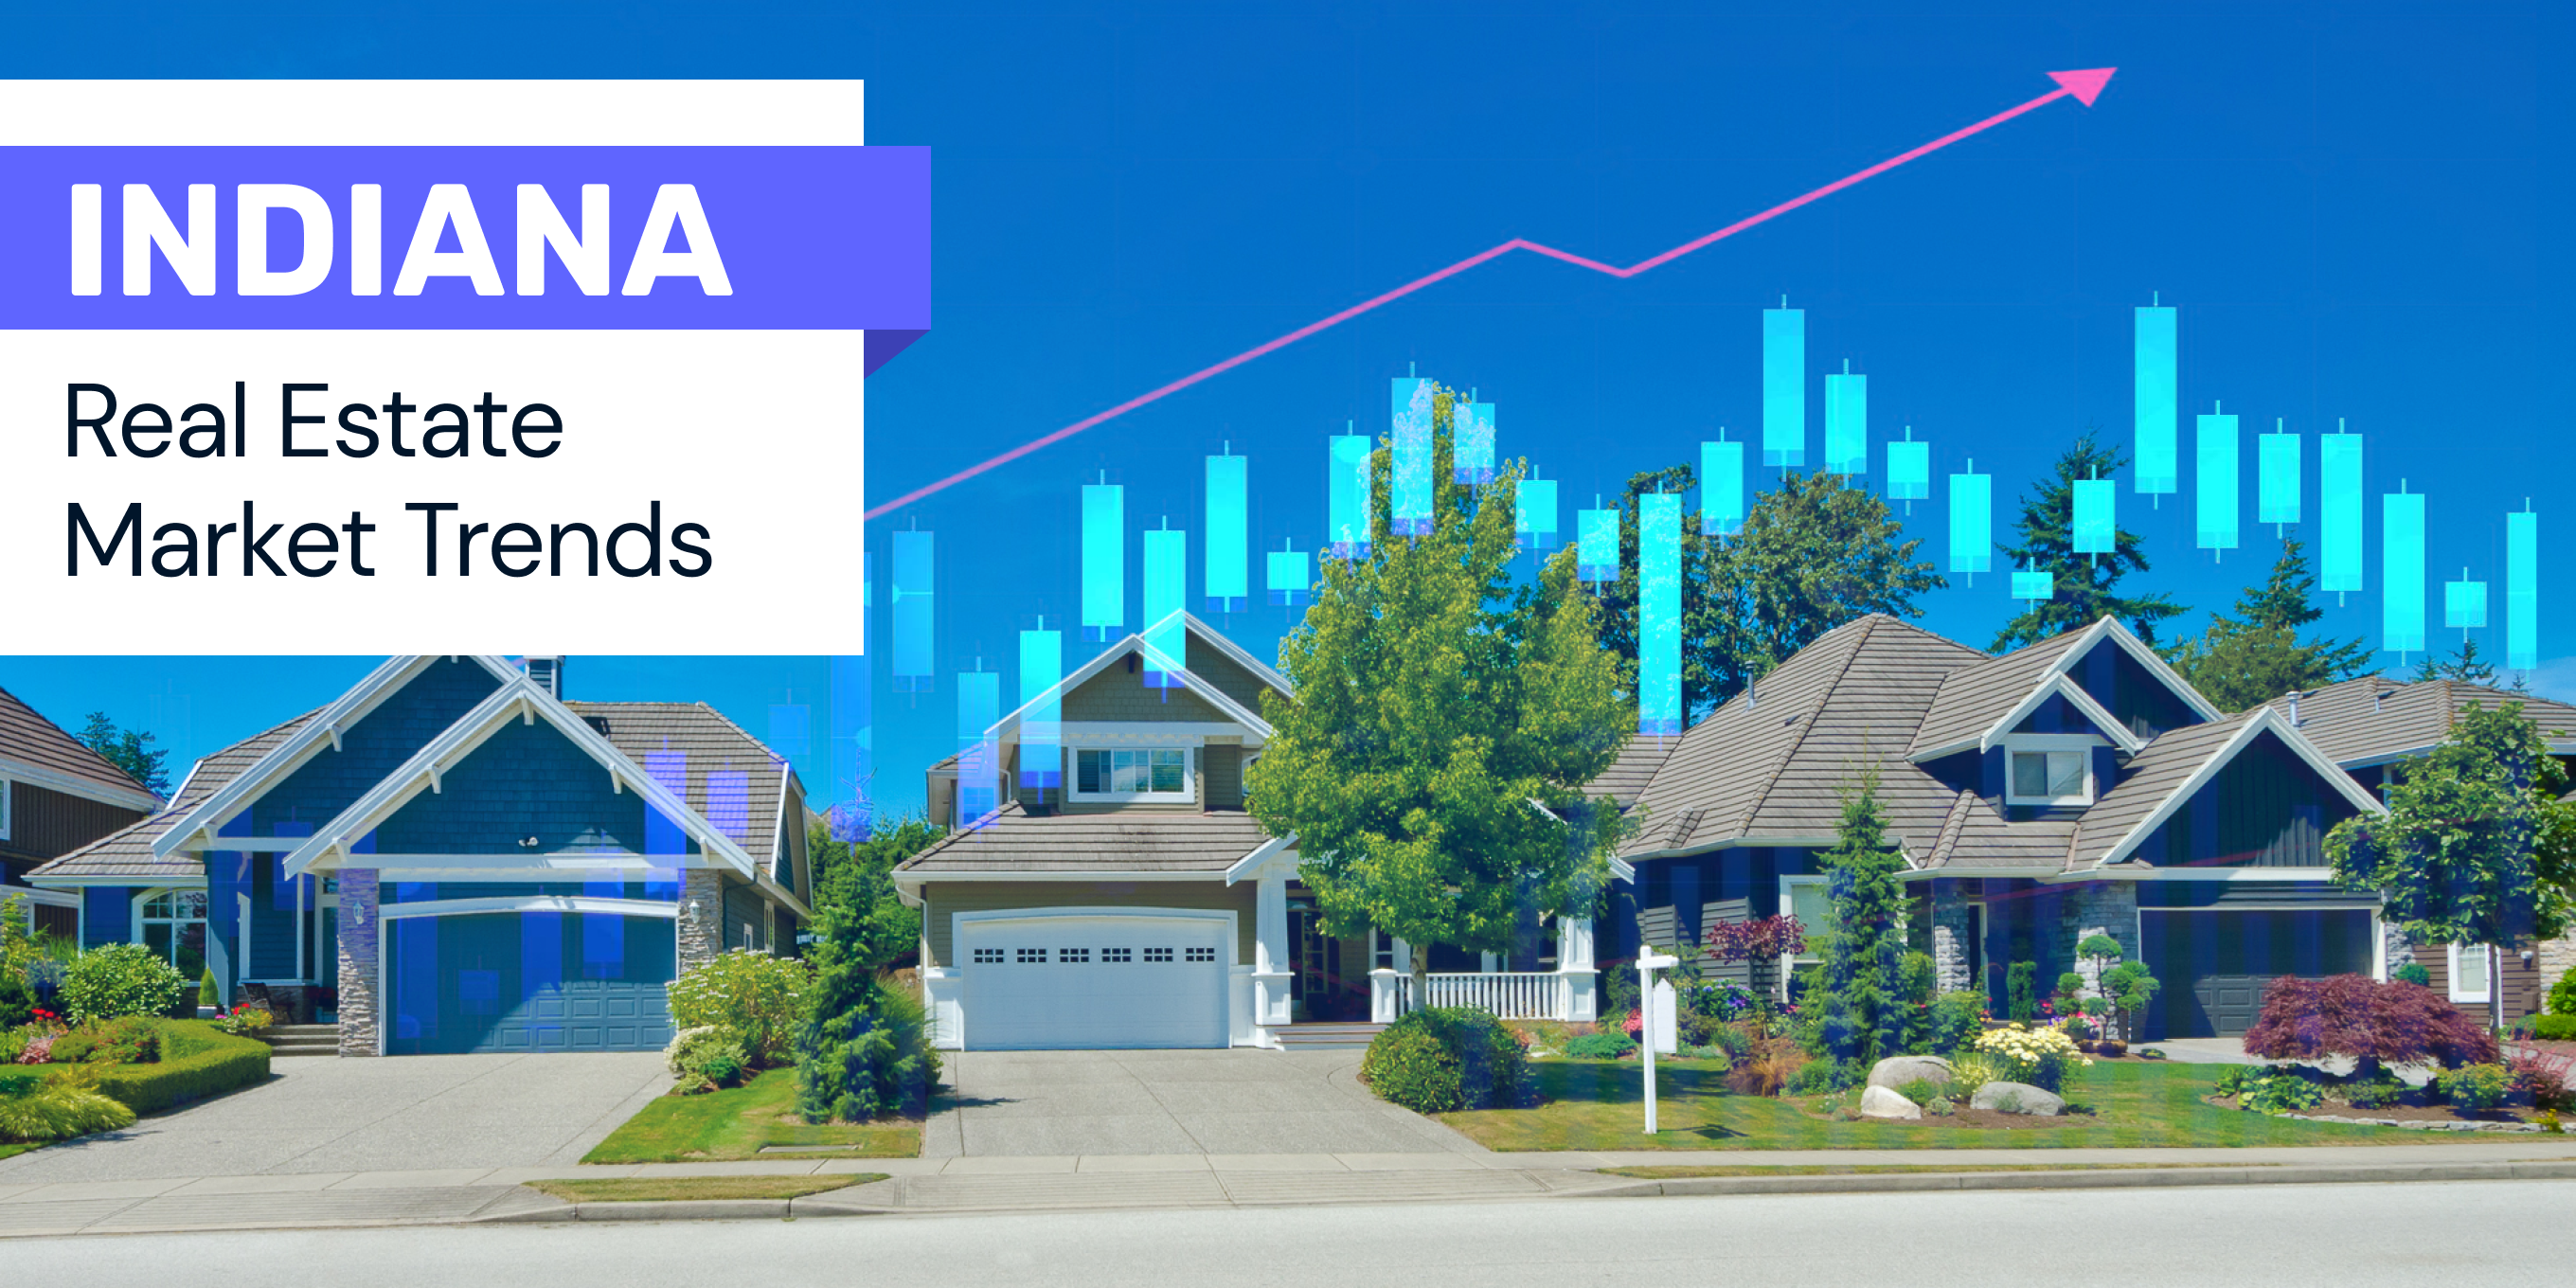 Indiana real estate trends